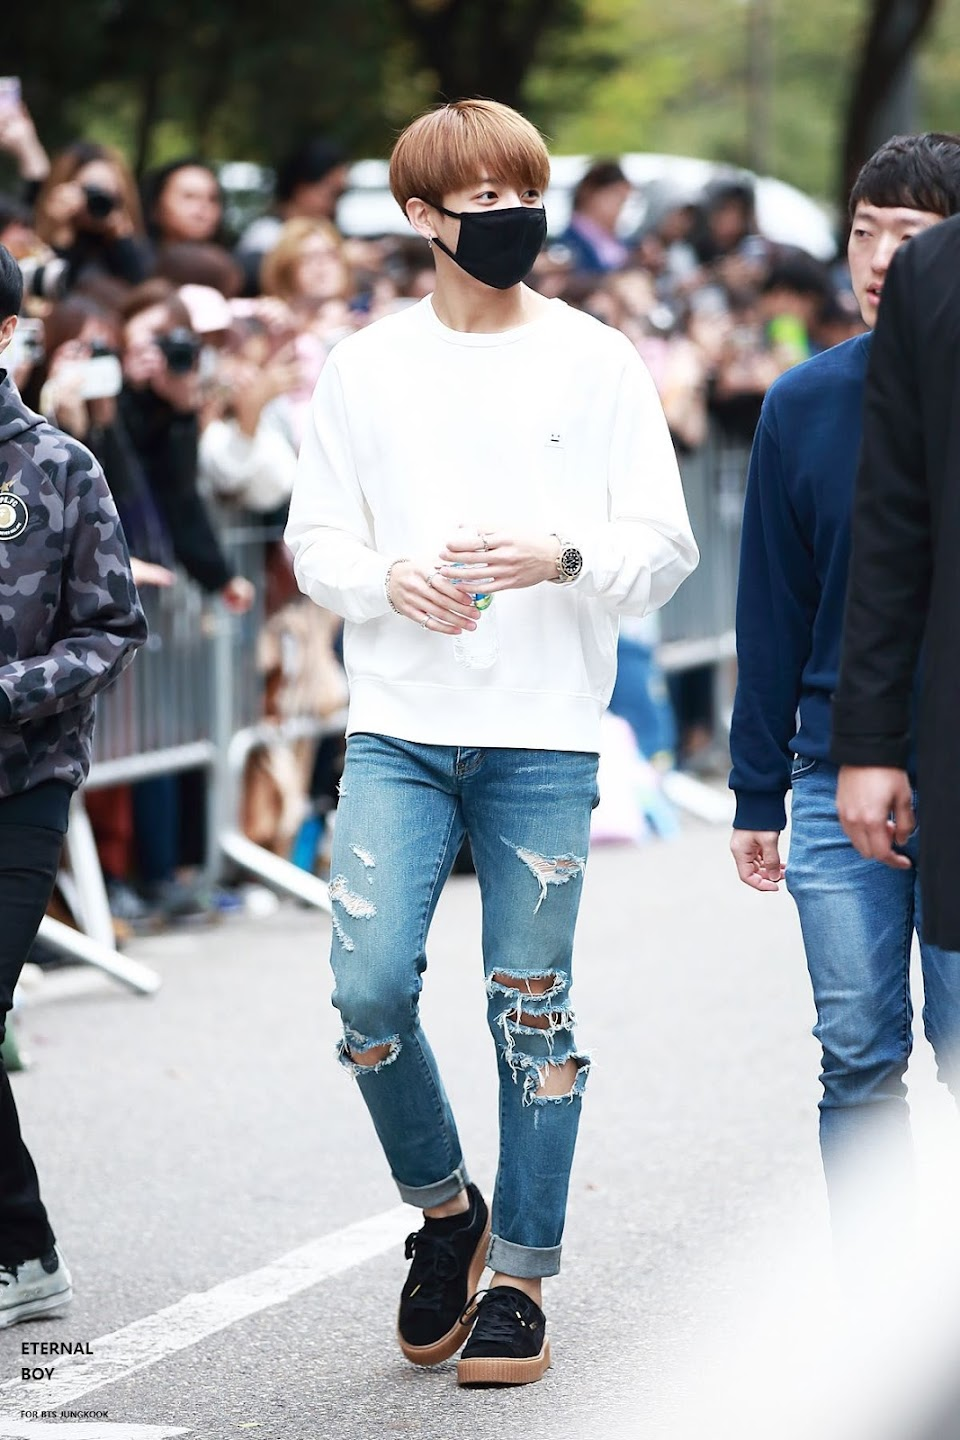 jungkookrippedjeans_10a